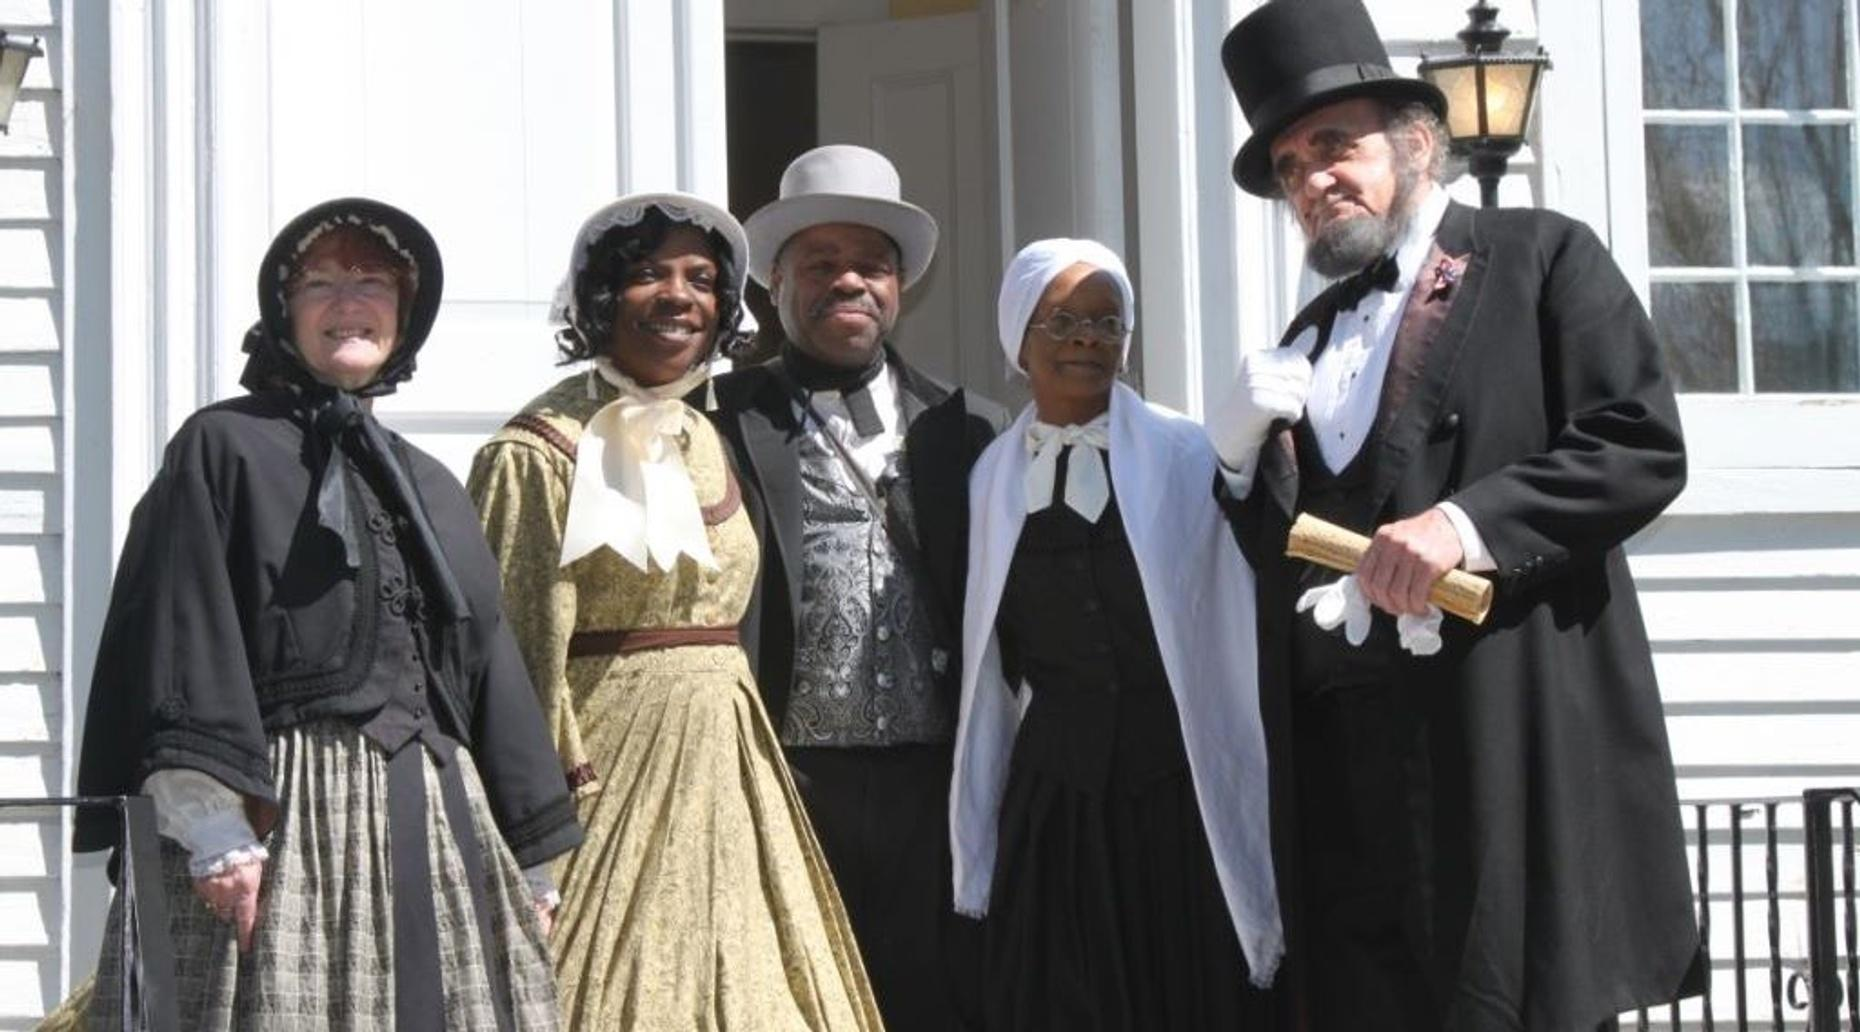 Underground Railroad Freedom Seekers Daily Heritage Tour of the Niagara Falls NY